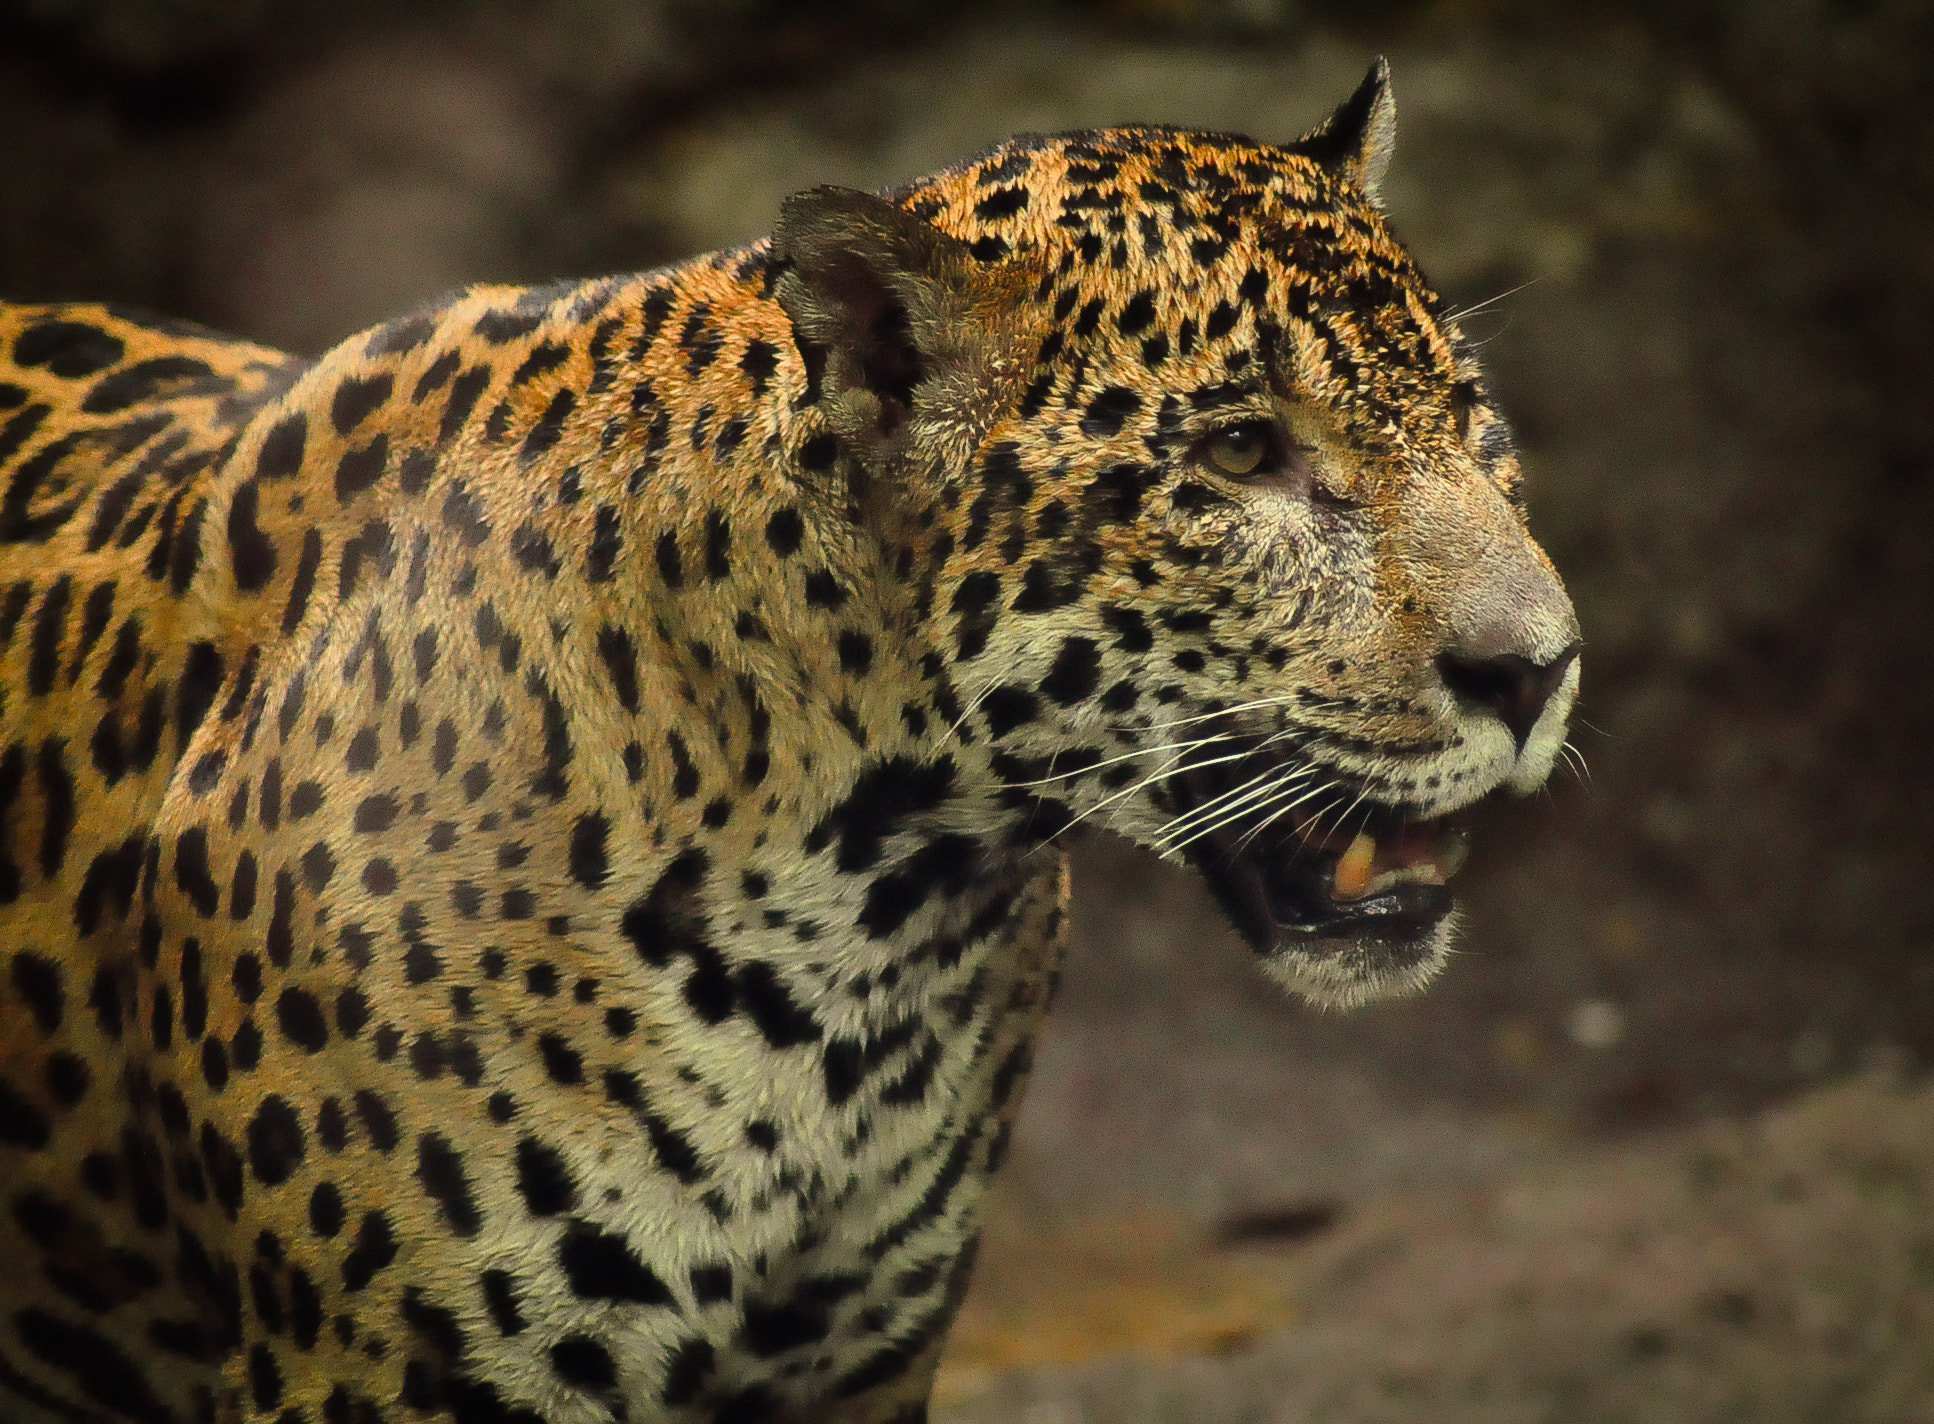 Photograph Jaguar by Xet Ng on 500px